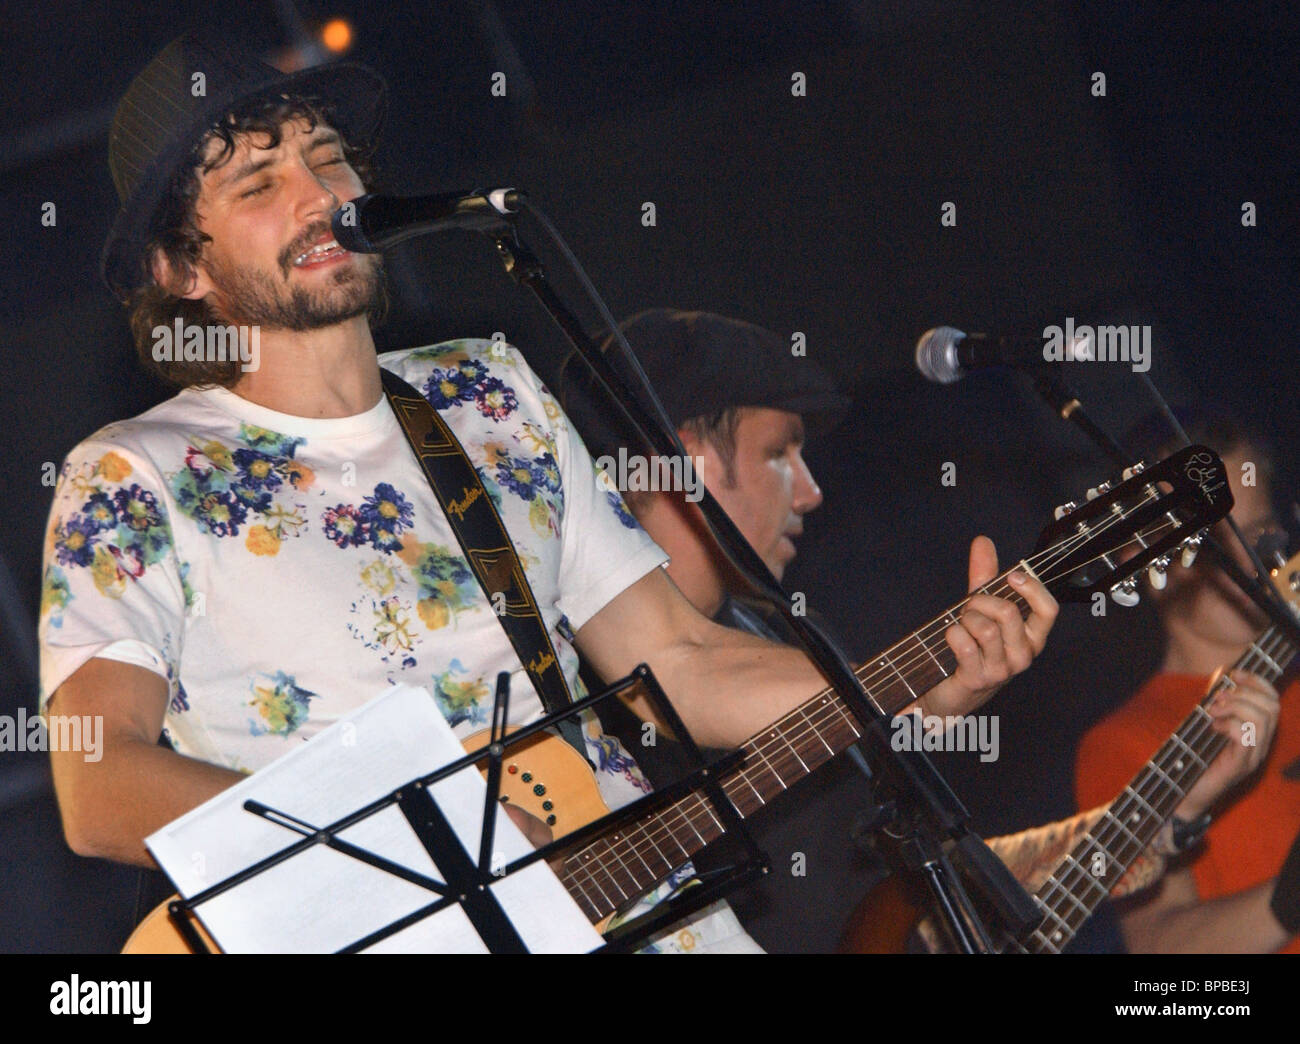 Pop group Umaturman gives concert in Moscow Stock Photo